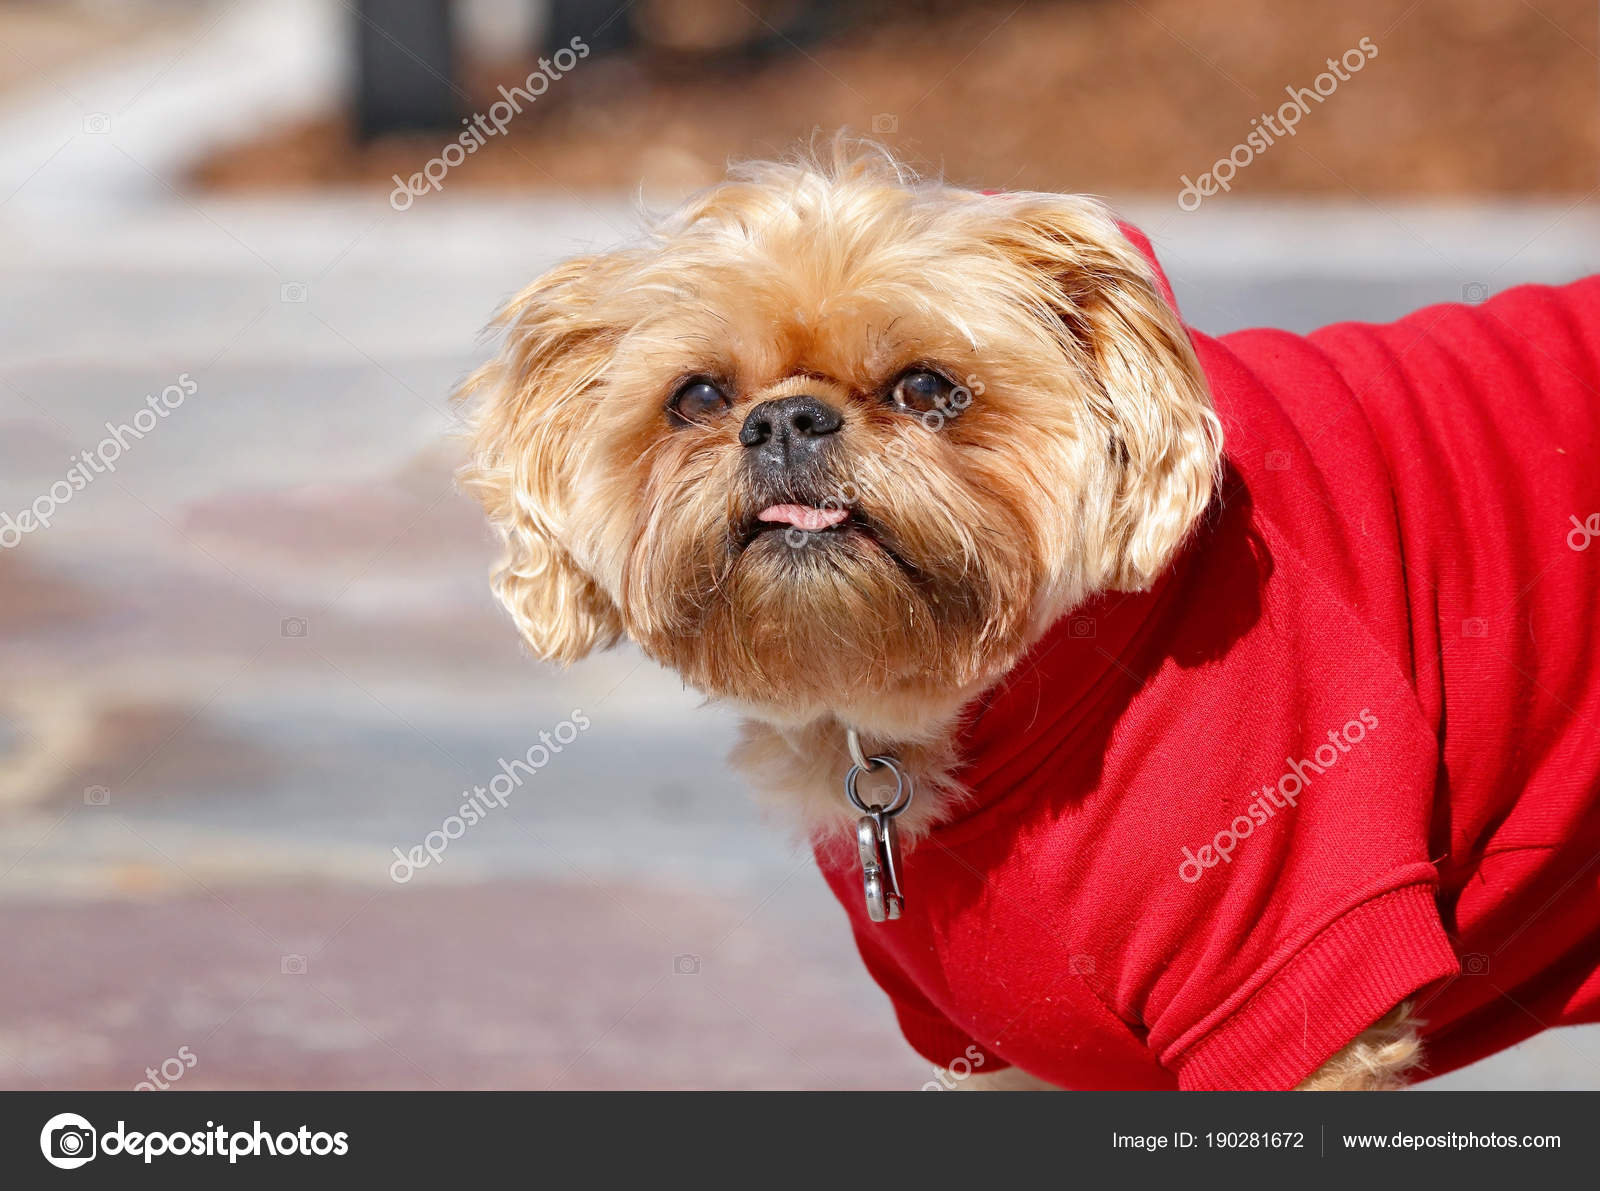 Cute Shih Tzu Terrier Mix With A Red Sweatshirt On Stock Photo